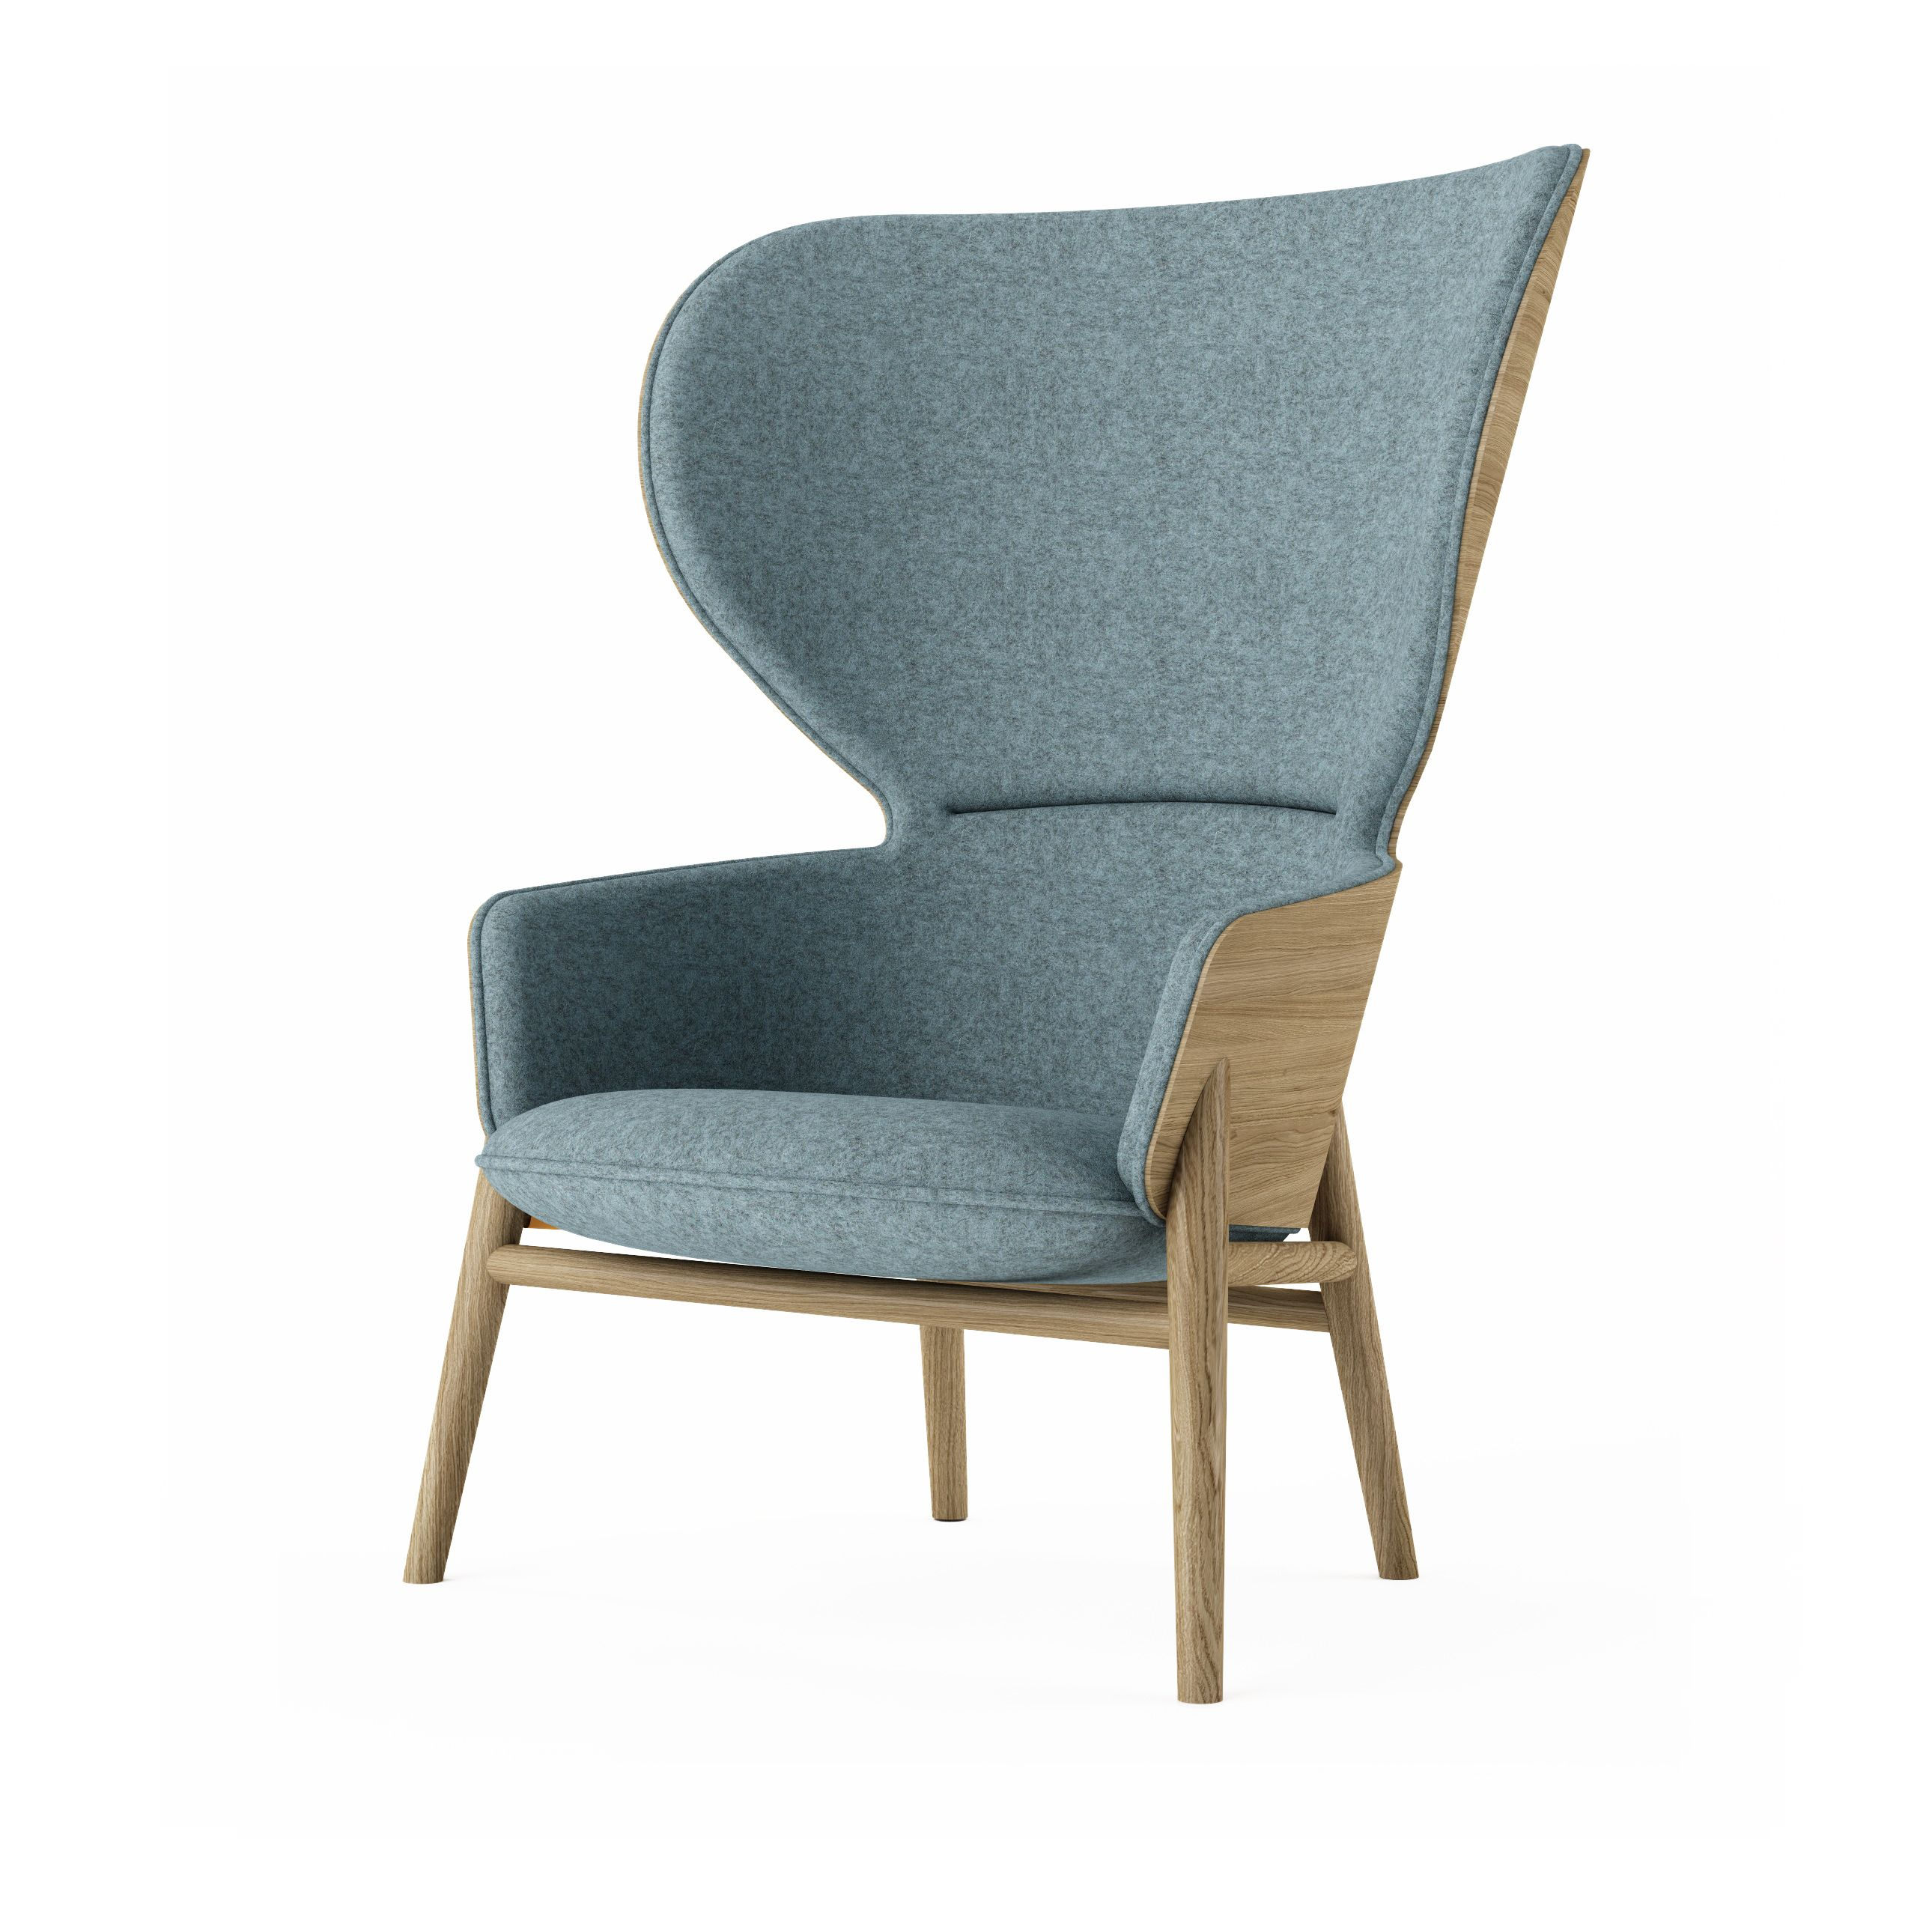 Hygge high back chair with 4 leg base - SHG3   Connection   LTH ...